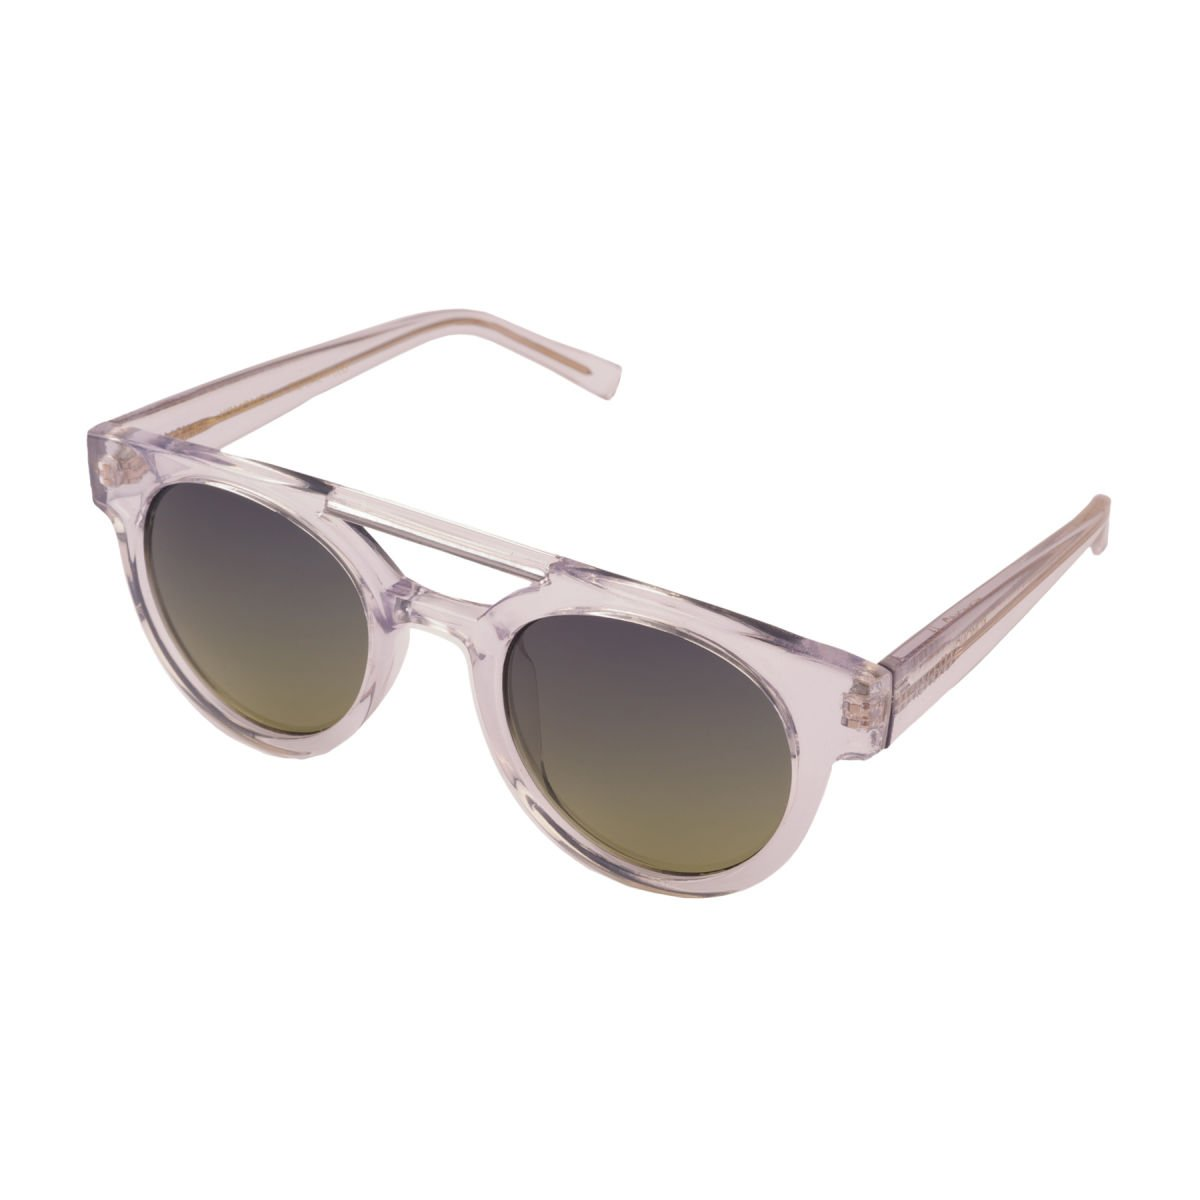 Amazon.com: Komono KOM-S1902 Round Sunglasses, Clear Frames ...